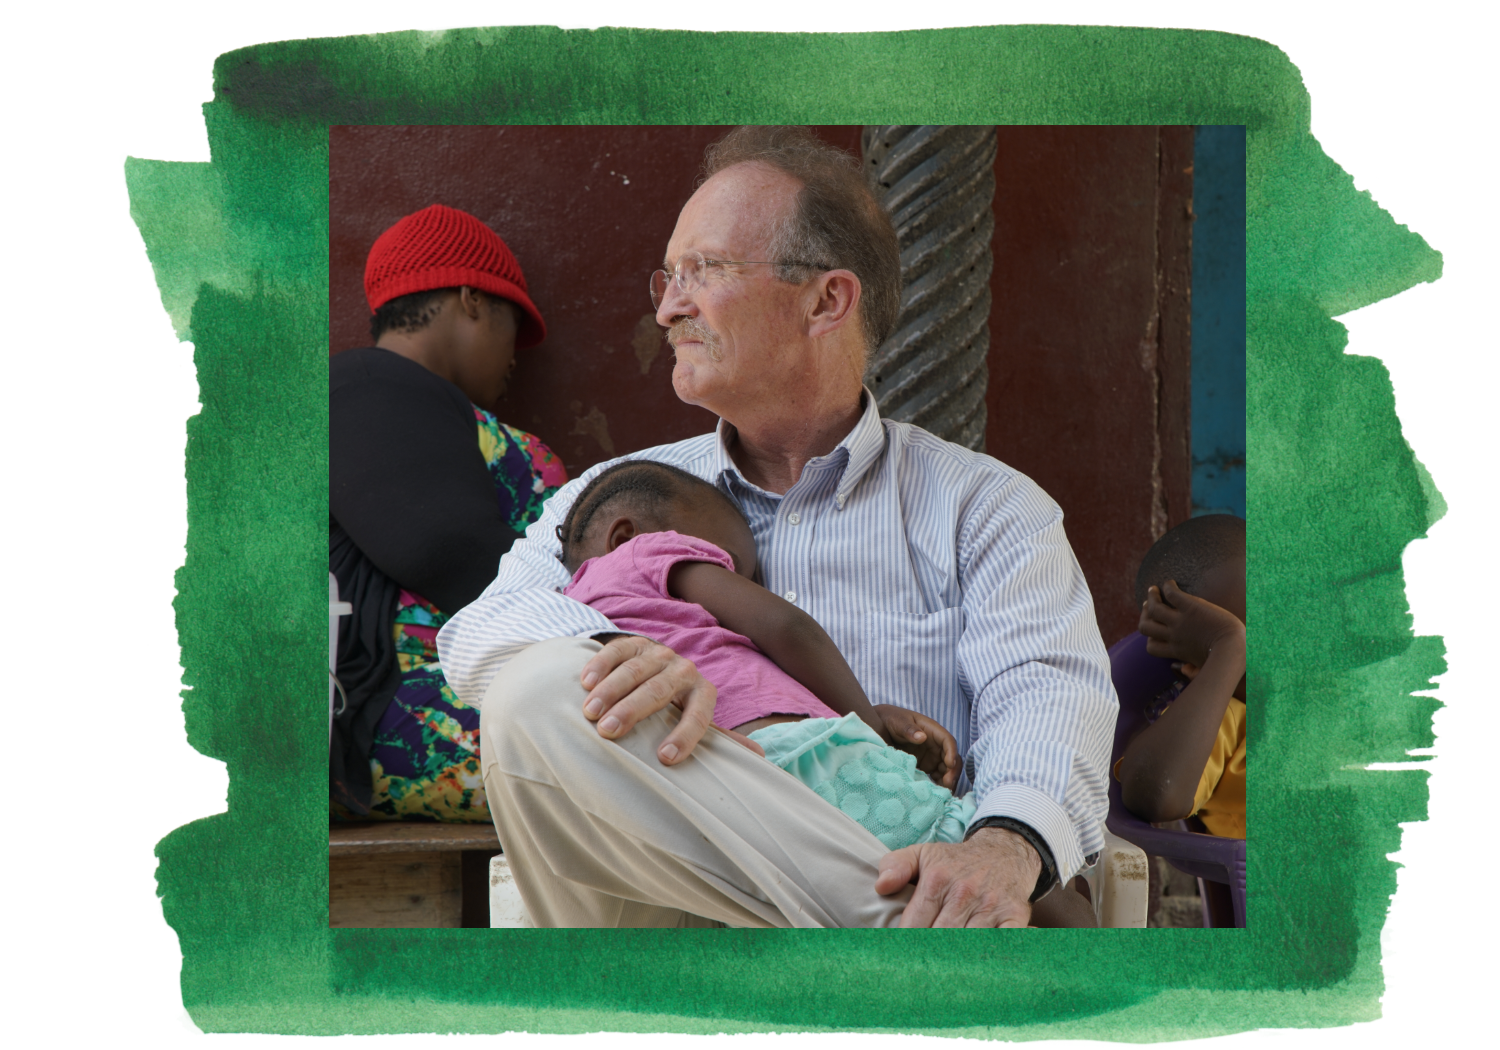 Peace Corps volunteer Dr. Kevin Rodgers holds a sleepy child during filming in Liberia.